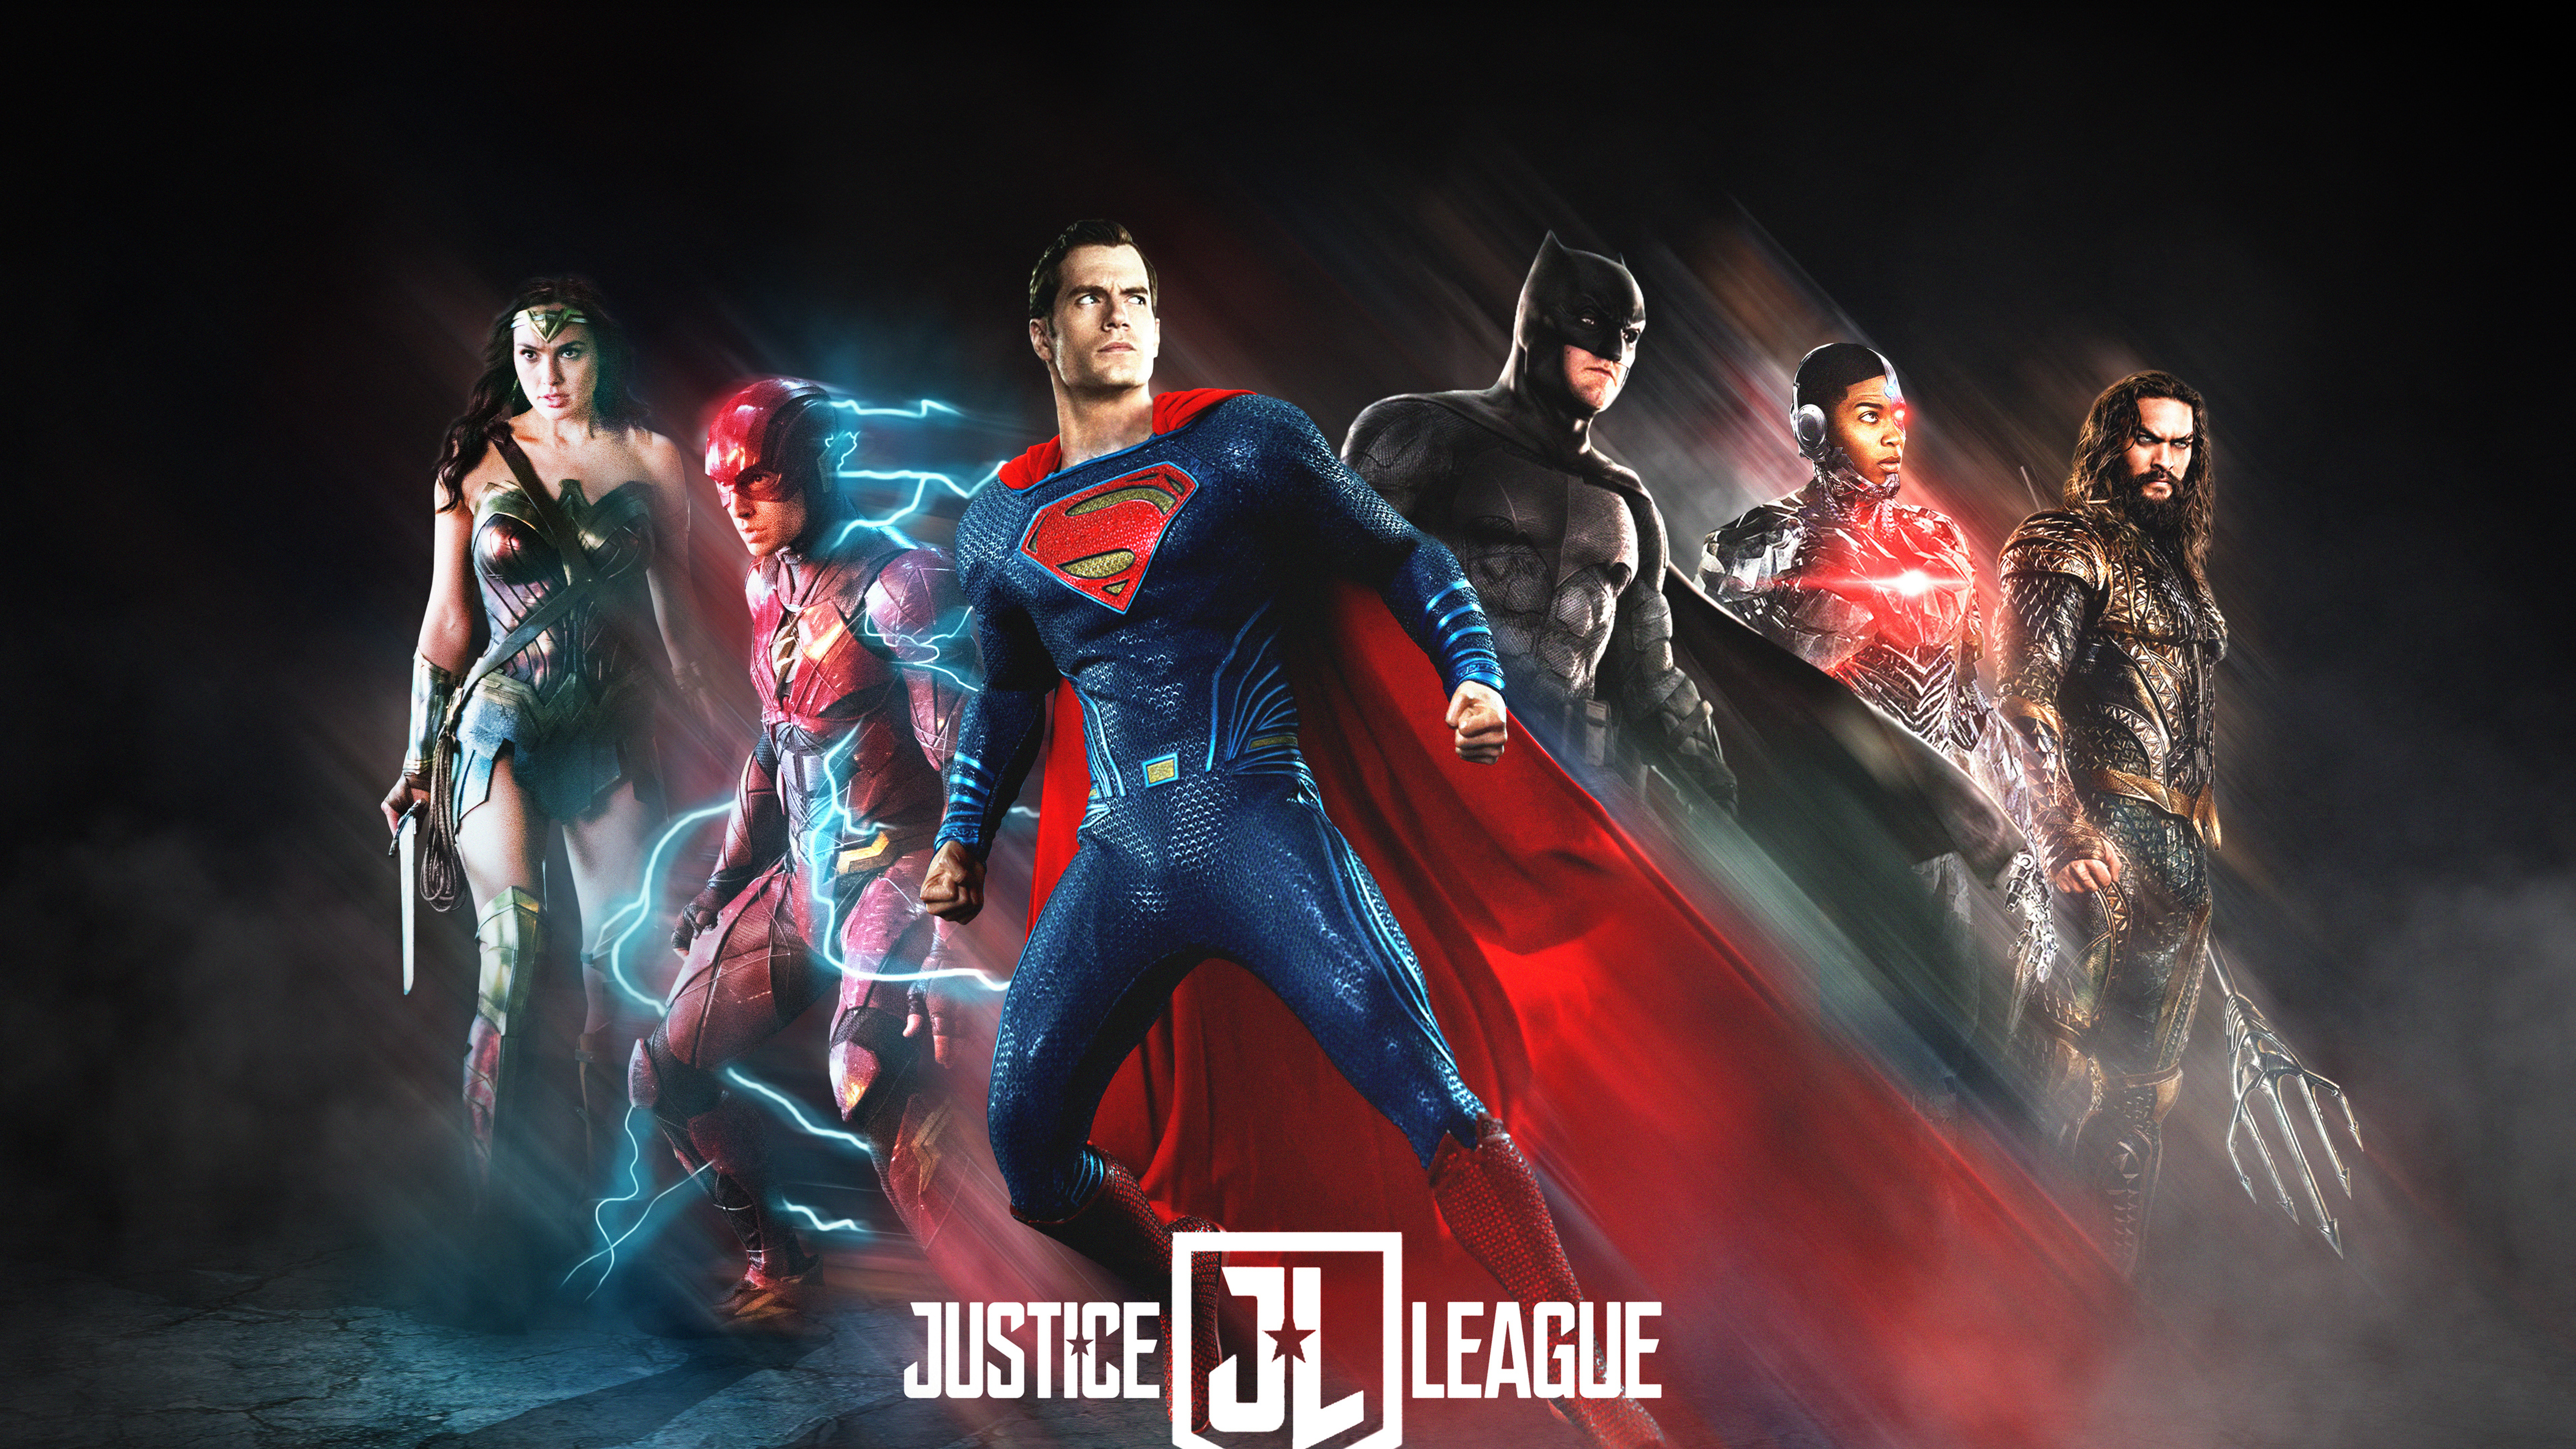 Justice League 2017 Poster Fan Art Wallpaper Background And Photo Gallery